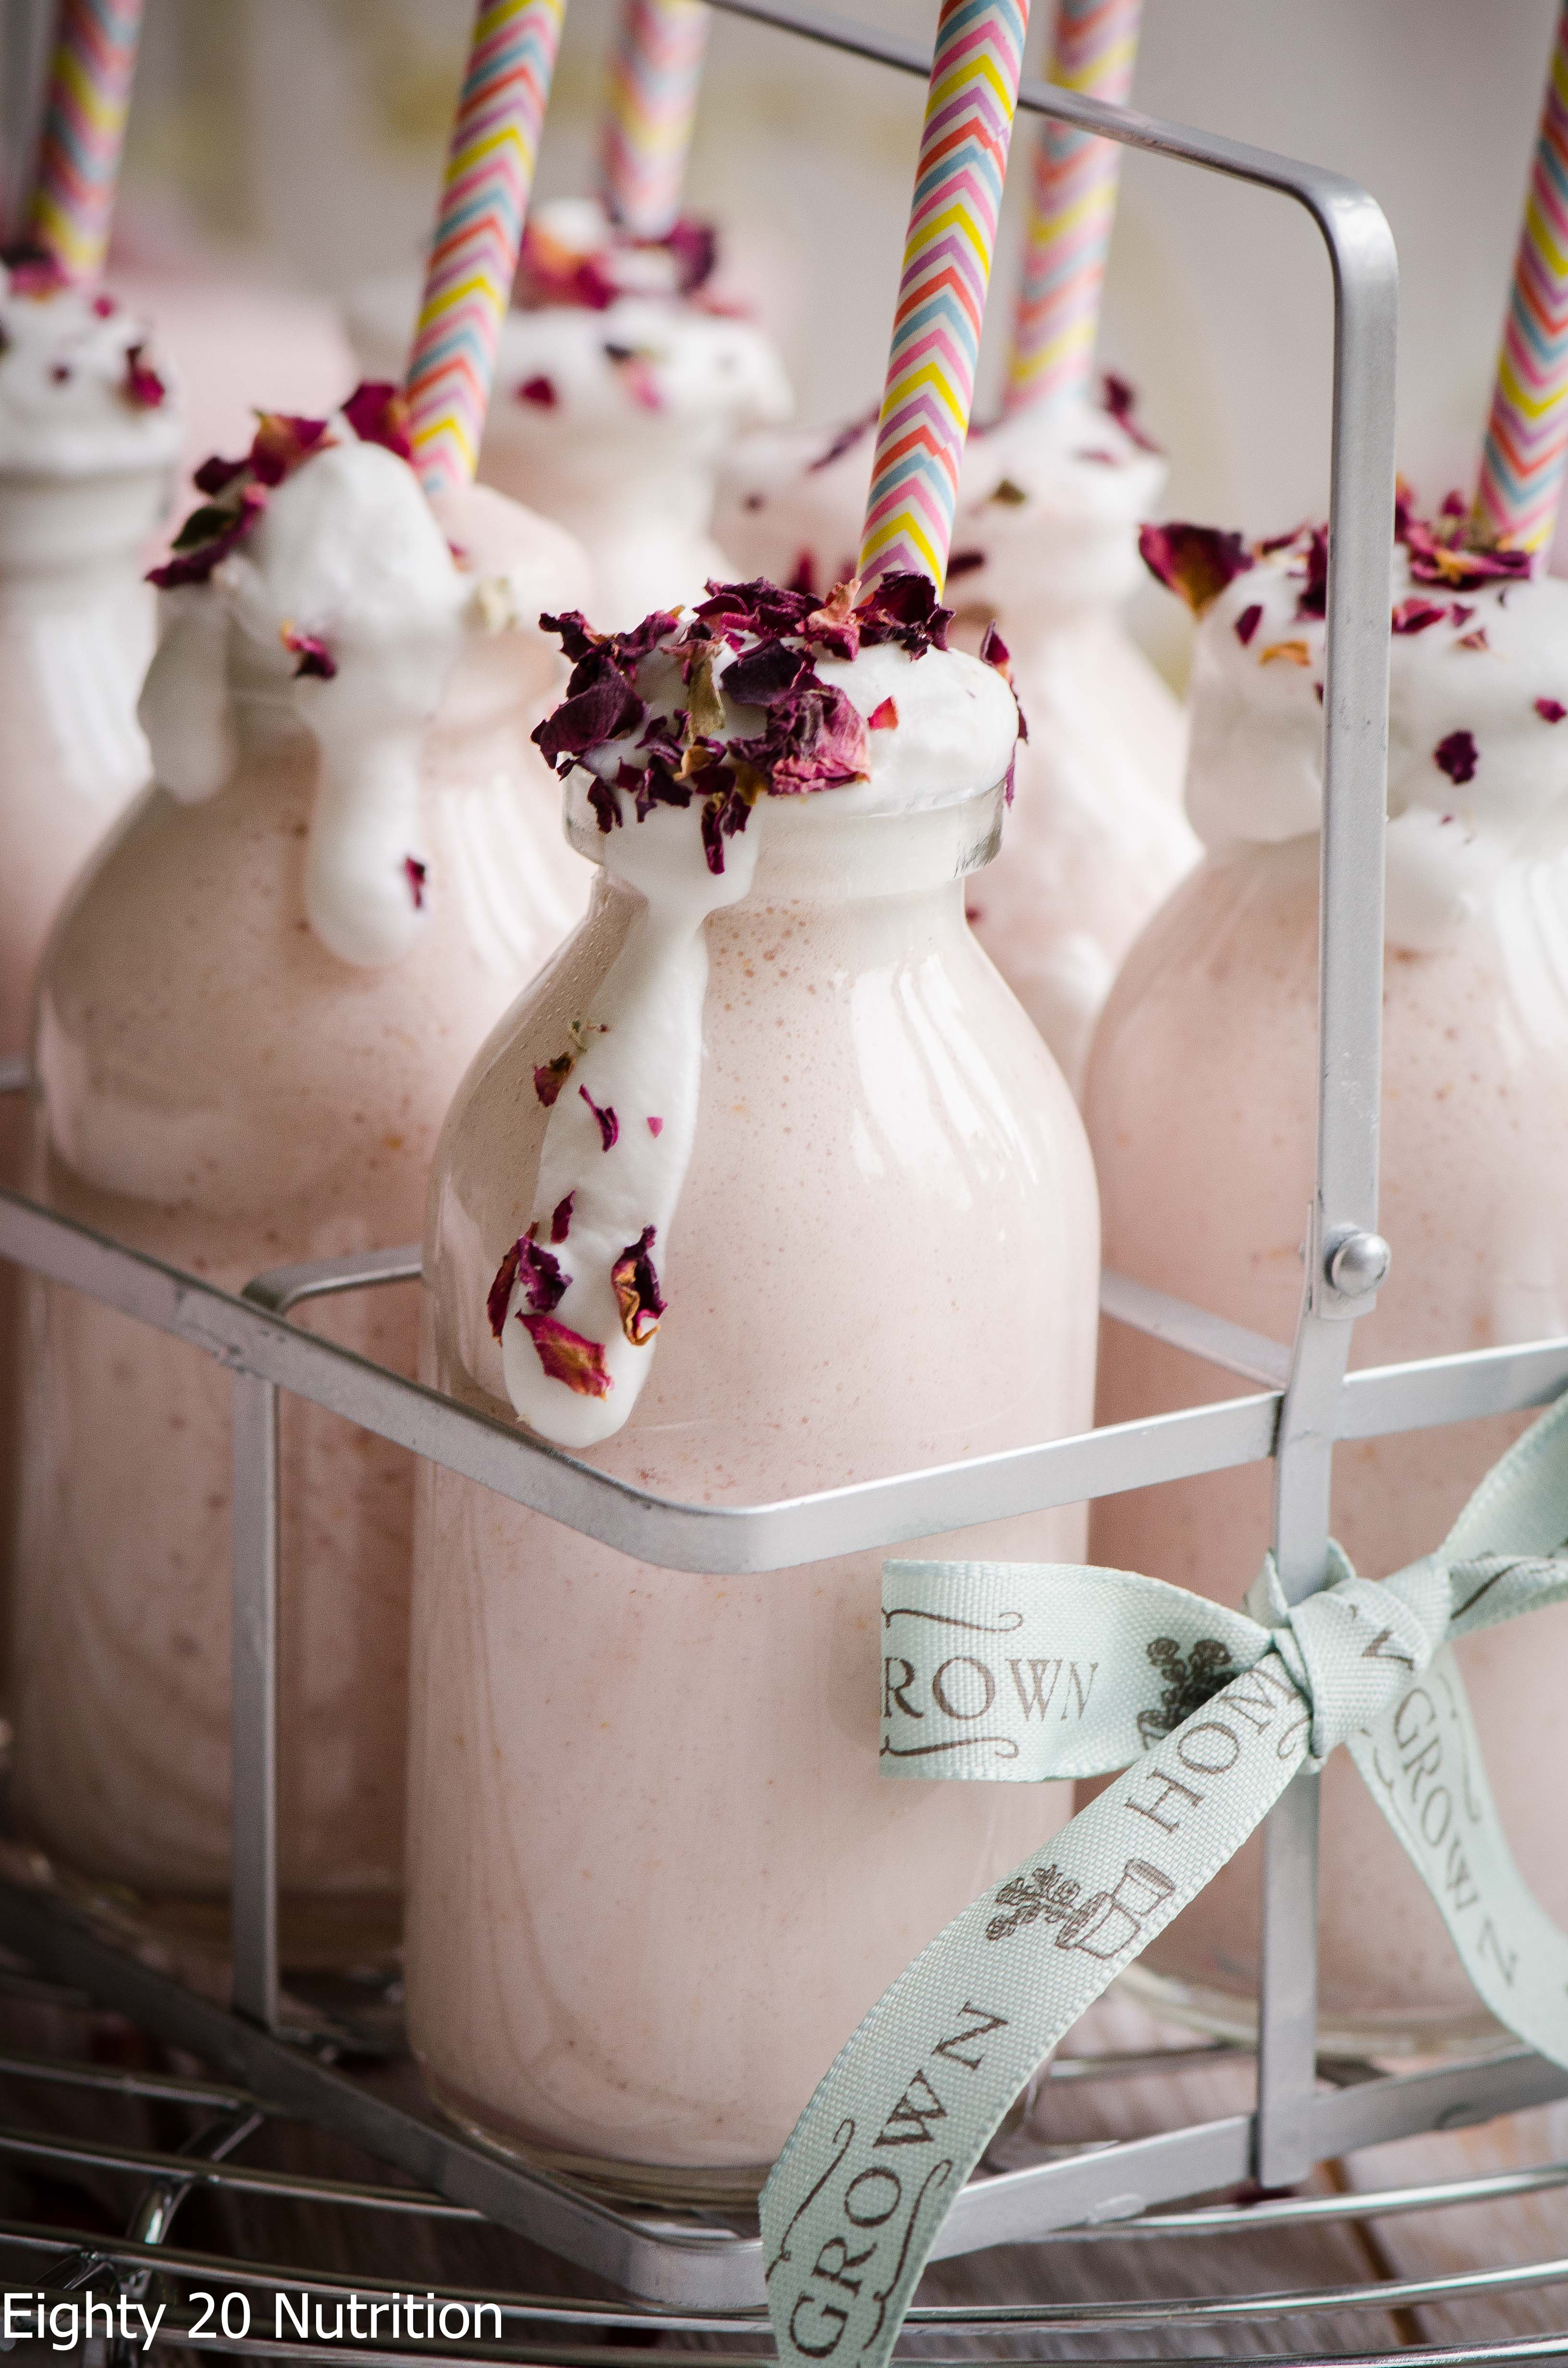 Raspberry and Rose Milkshakes